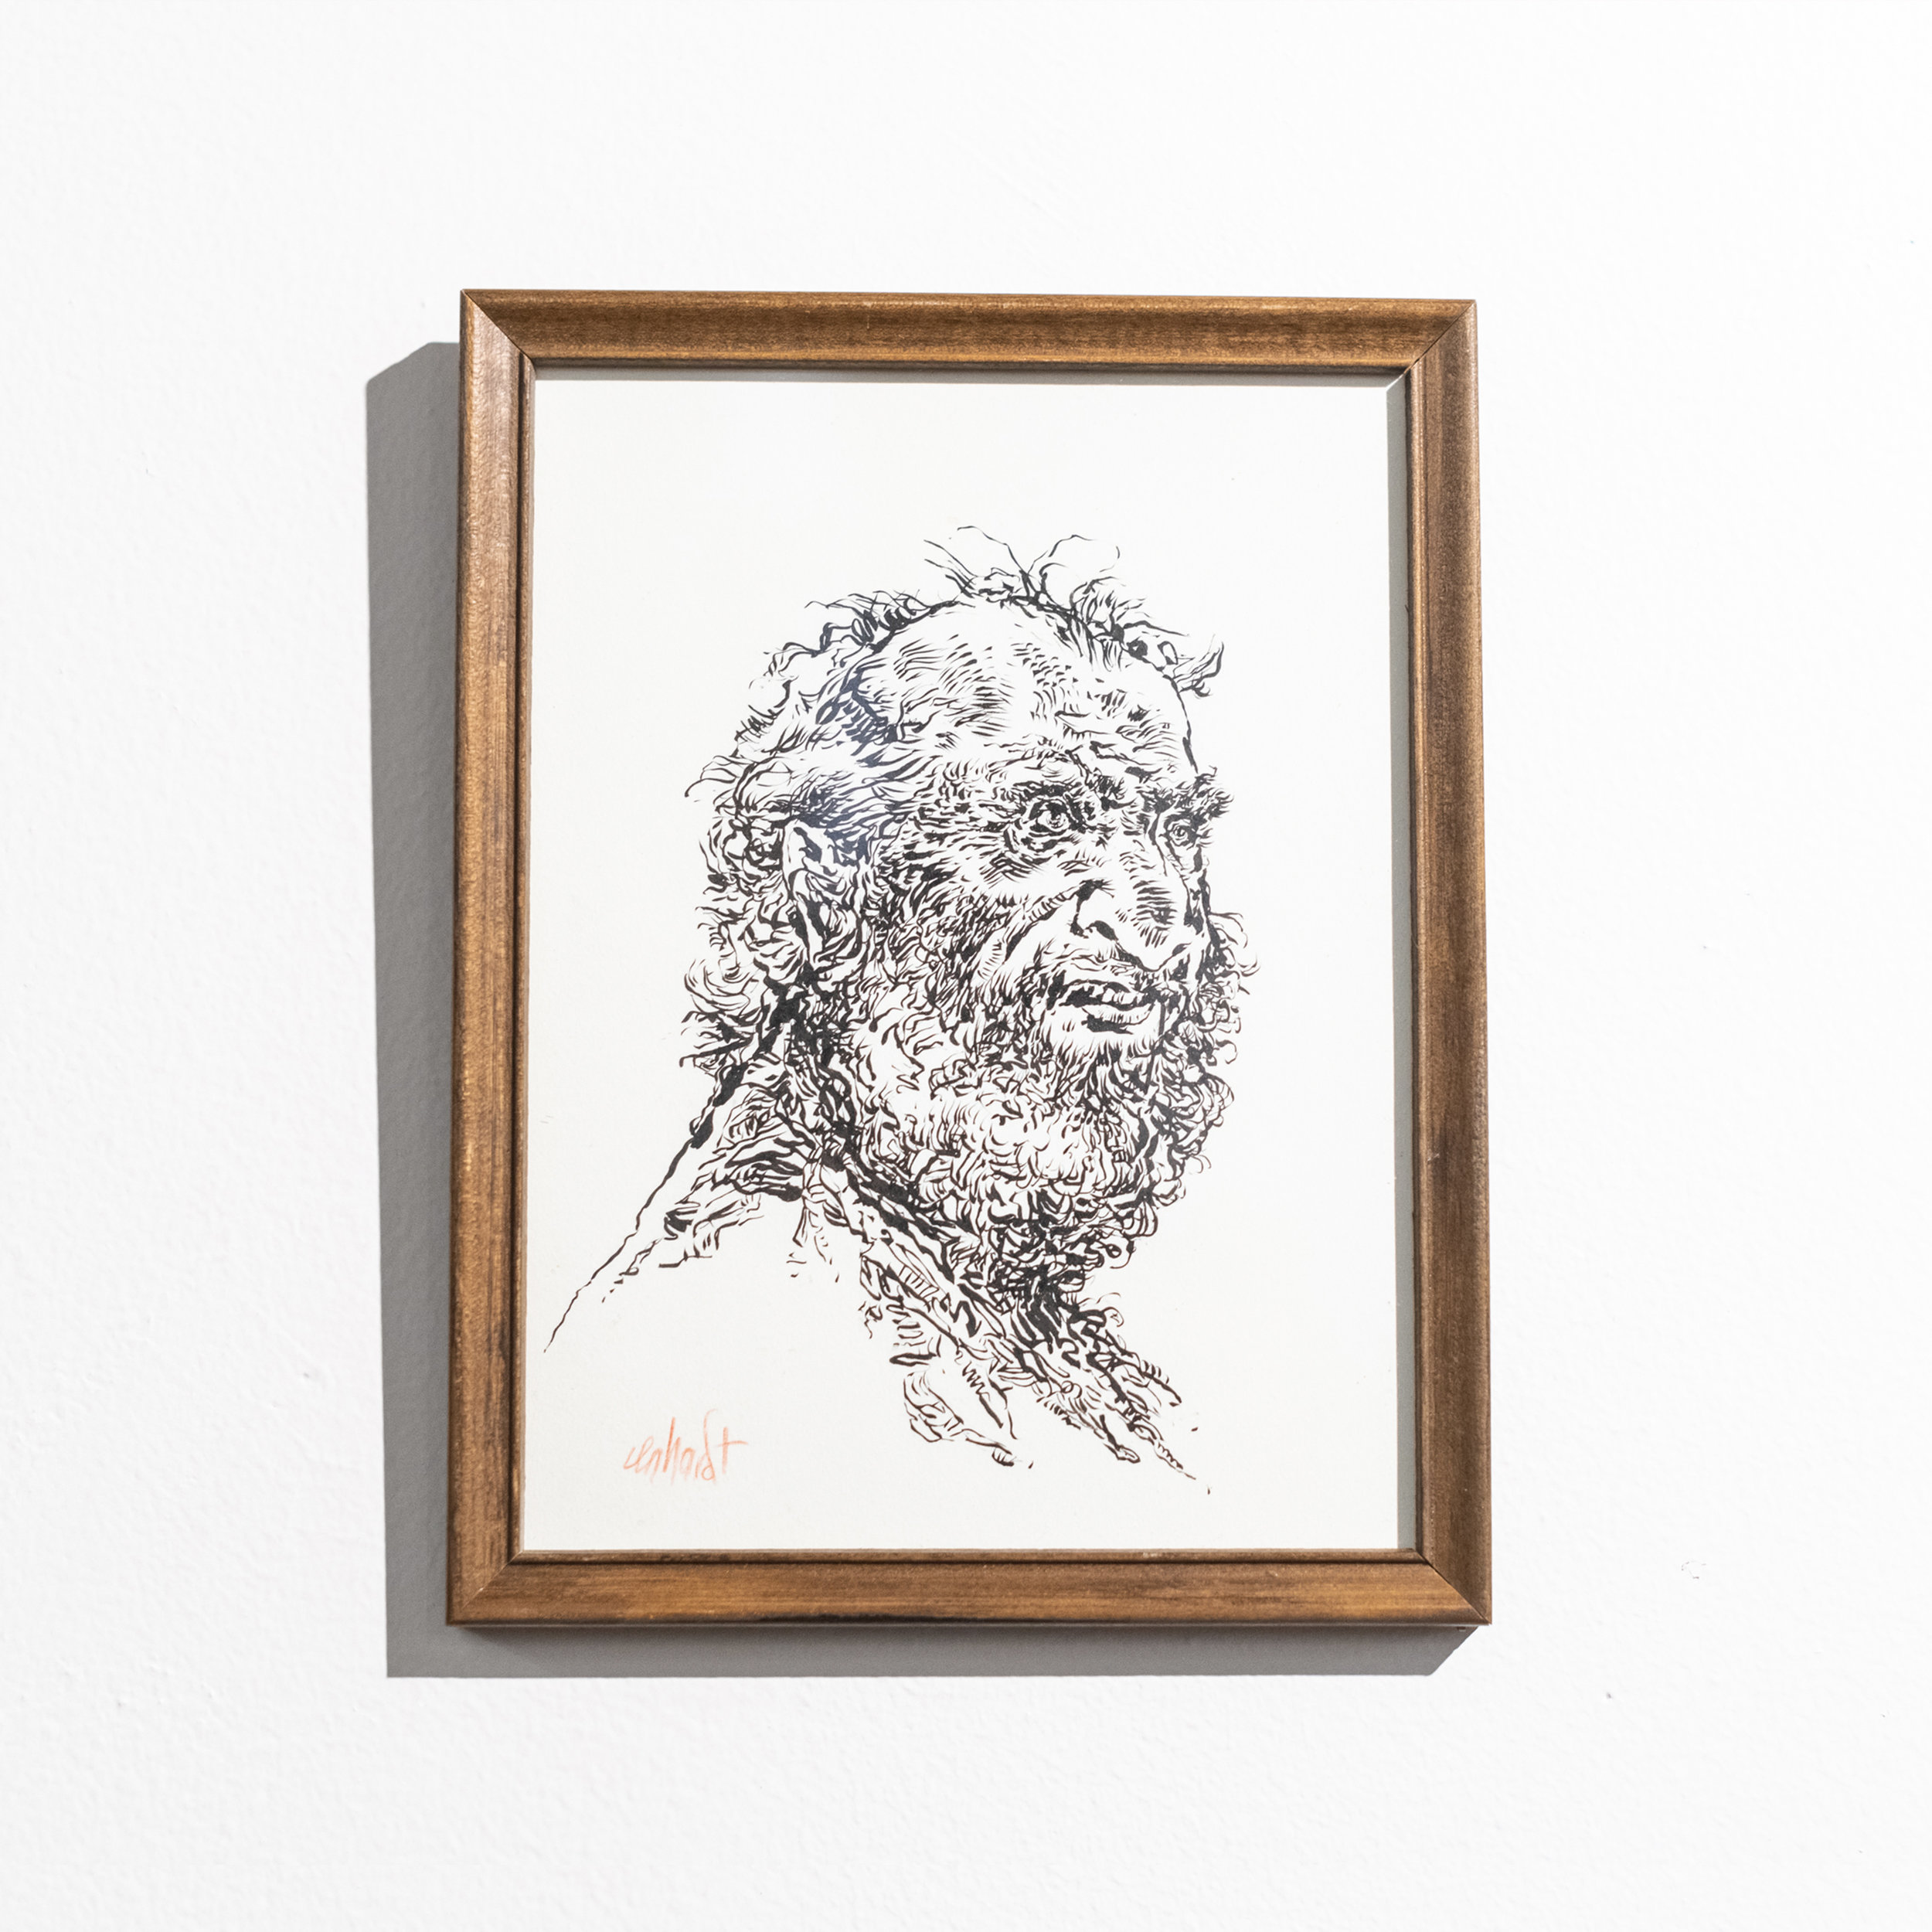 Raymond in Between - Ink on paper